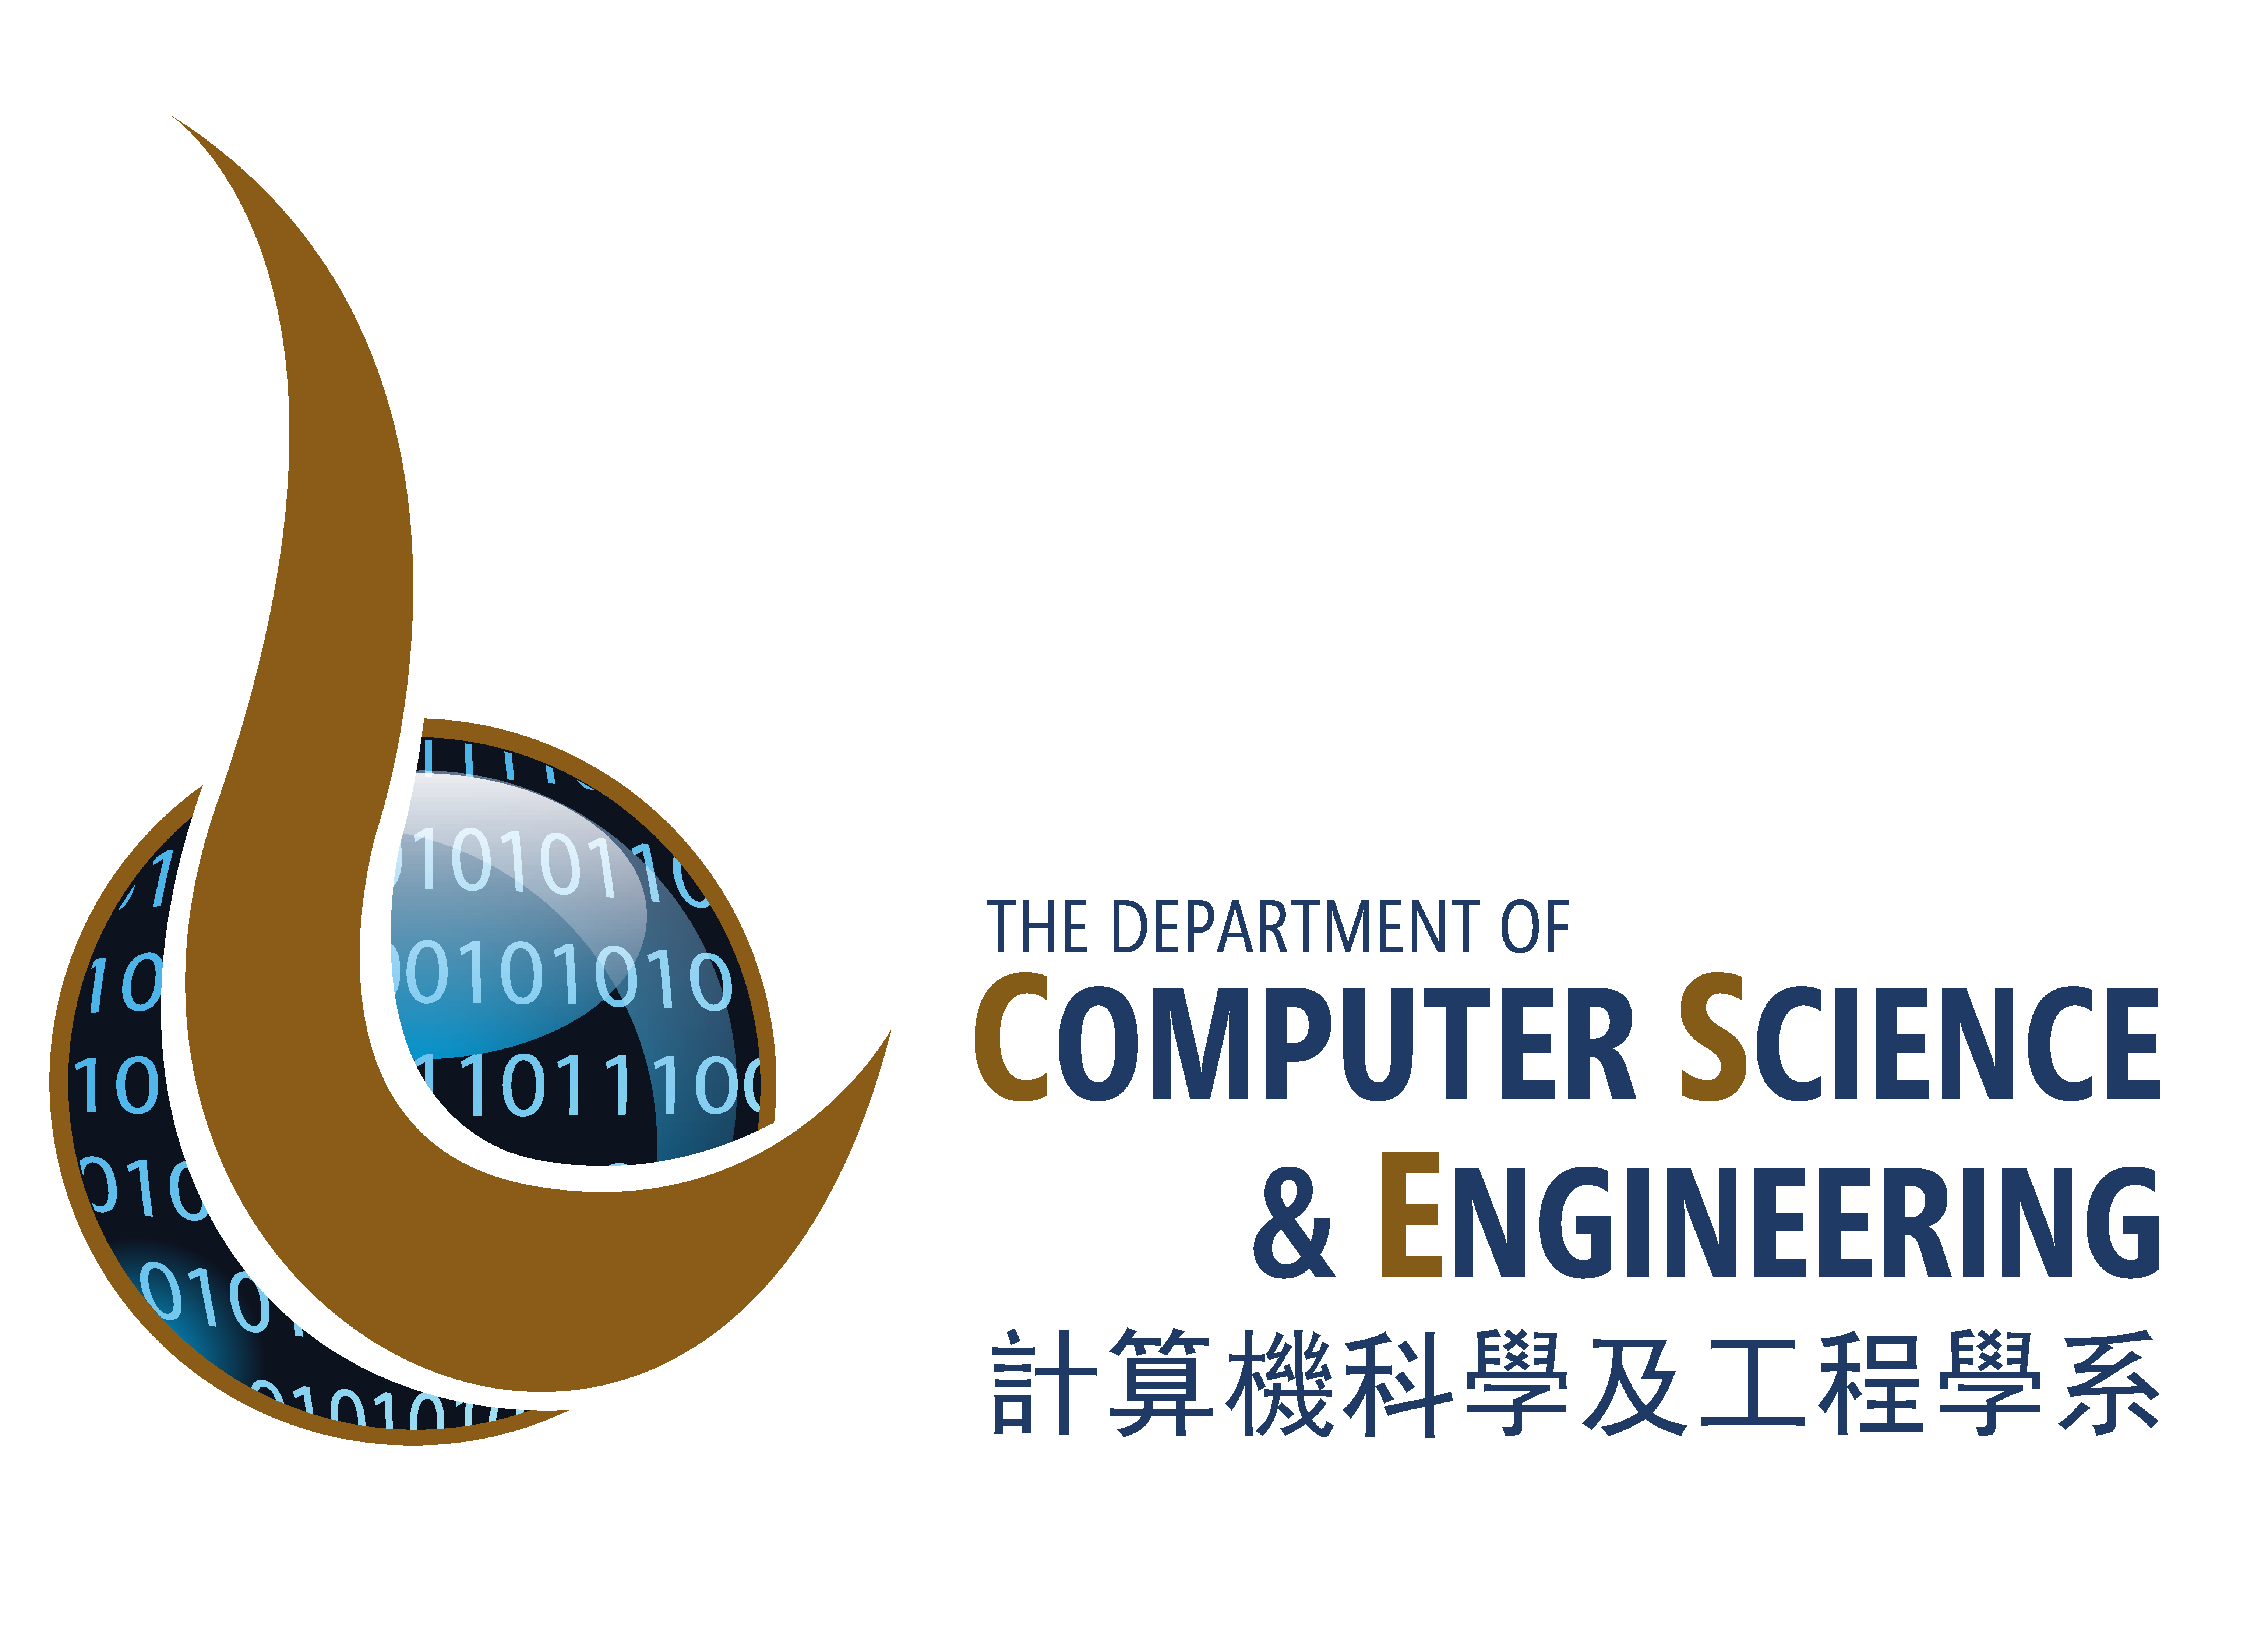 Logos of the Department of Computer Science and Engineering, HKUST.